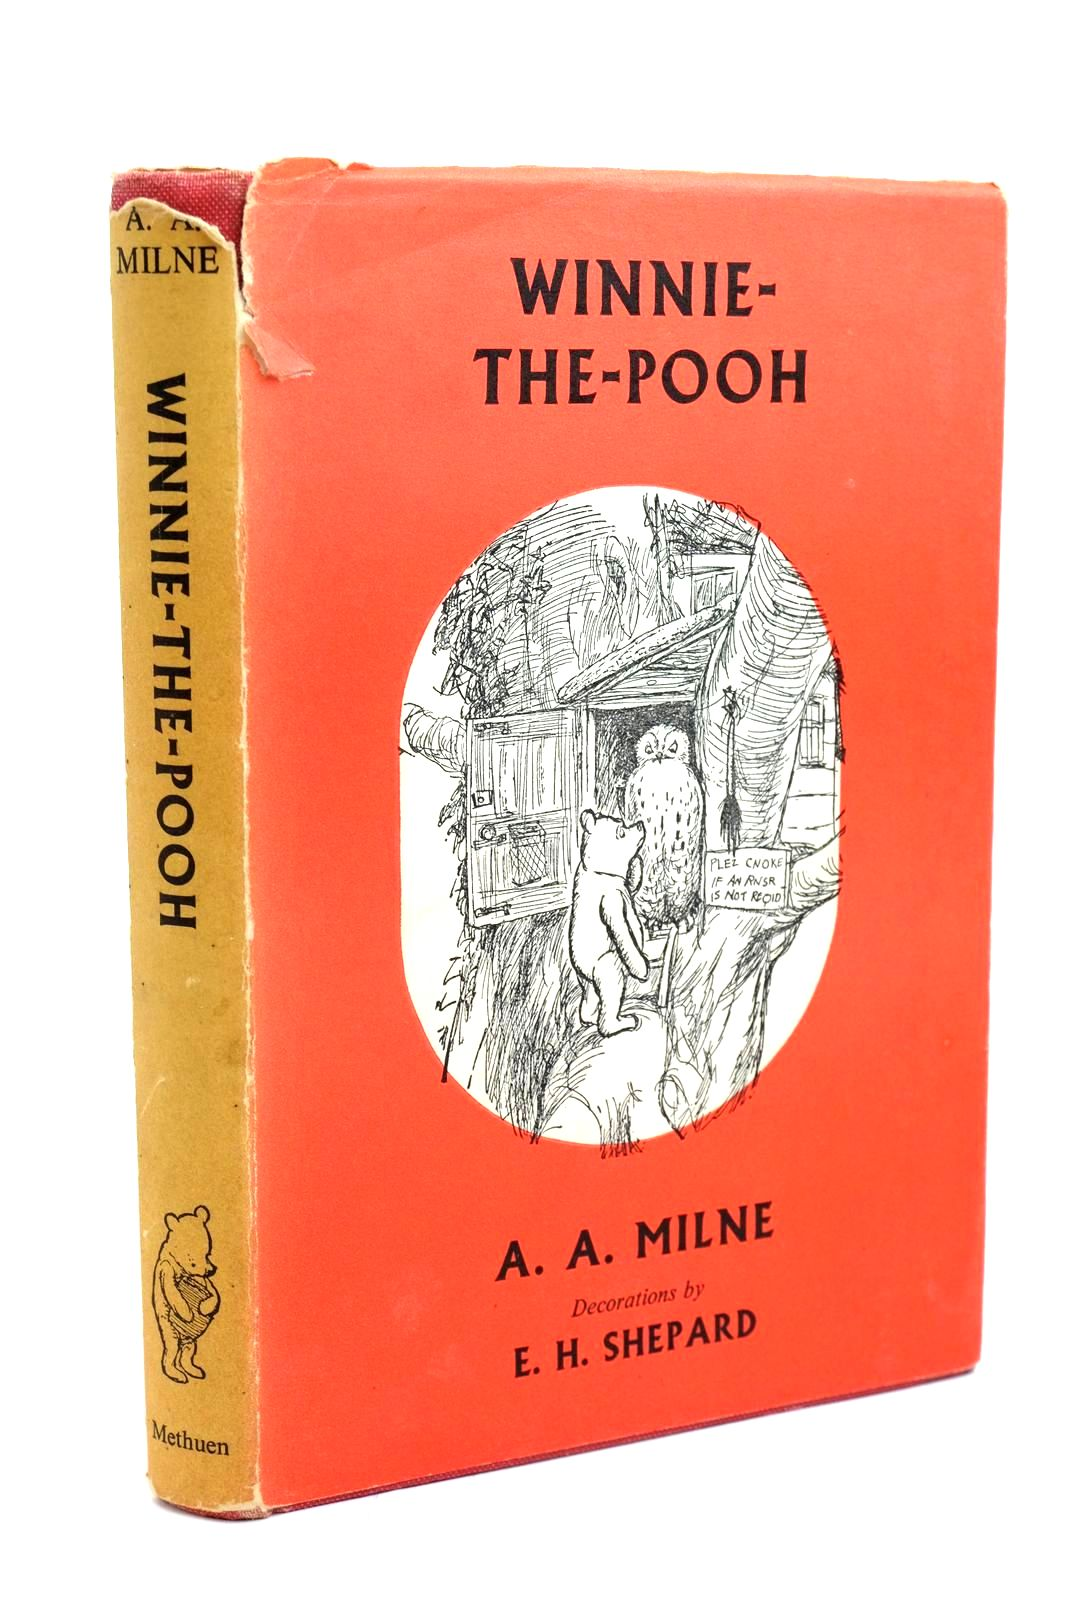 Photo of WINNIE-THE-POOH written by Milne, A.A. illustrated by Shepard, E.H. published by Methuen & Co. Ltd. (STOCK CODE: 1321438)  for sale by Stella & Rose's Books